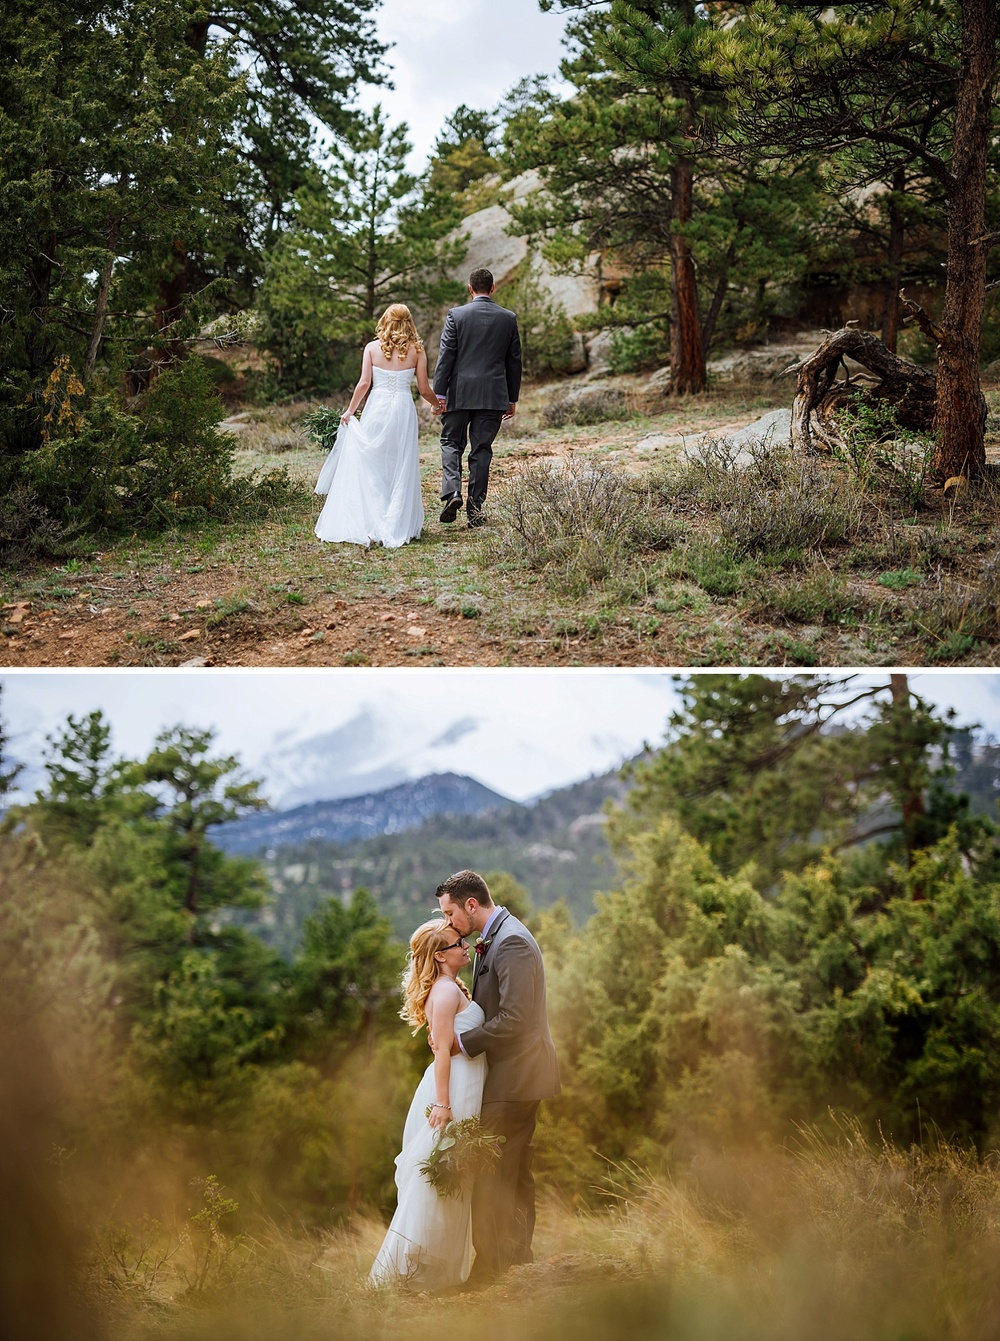 I've heard Rocky Mountain National Park is a beautiful and affordable place to get married. I really love these couple photos of the bride and groom hiking around the mountains! Photo by Maddie Mae Photography